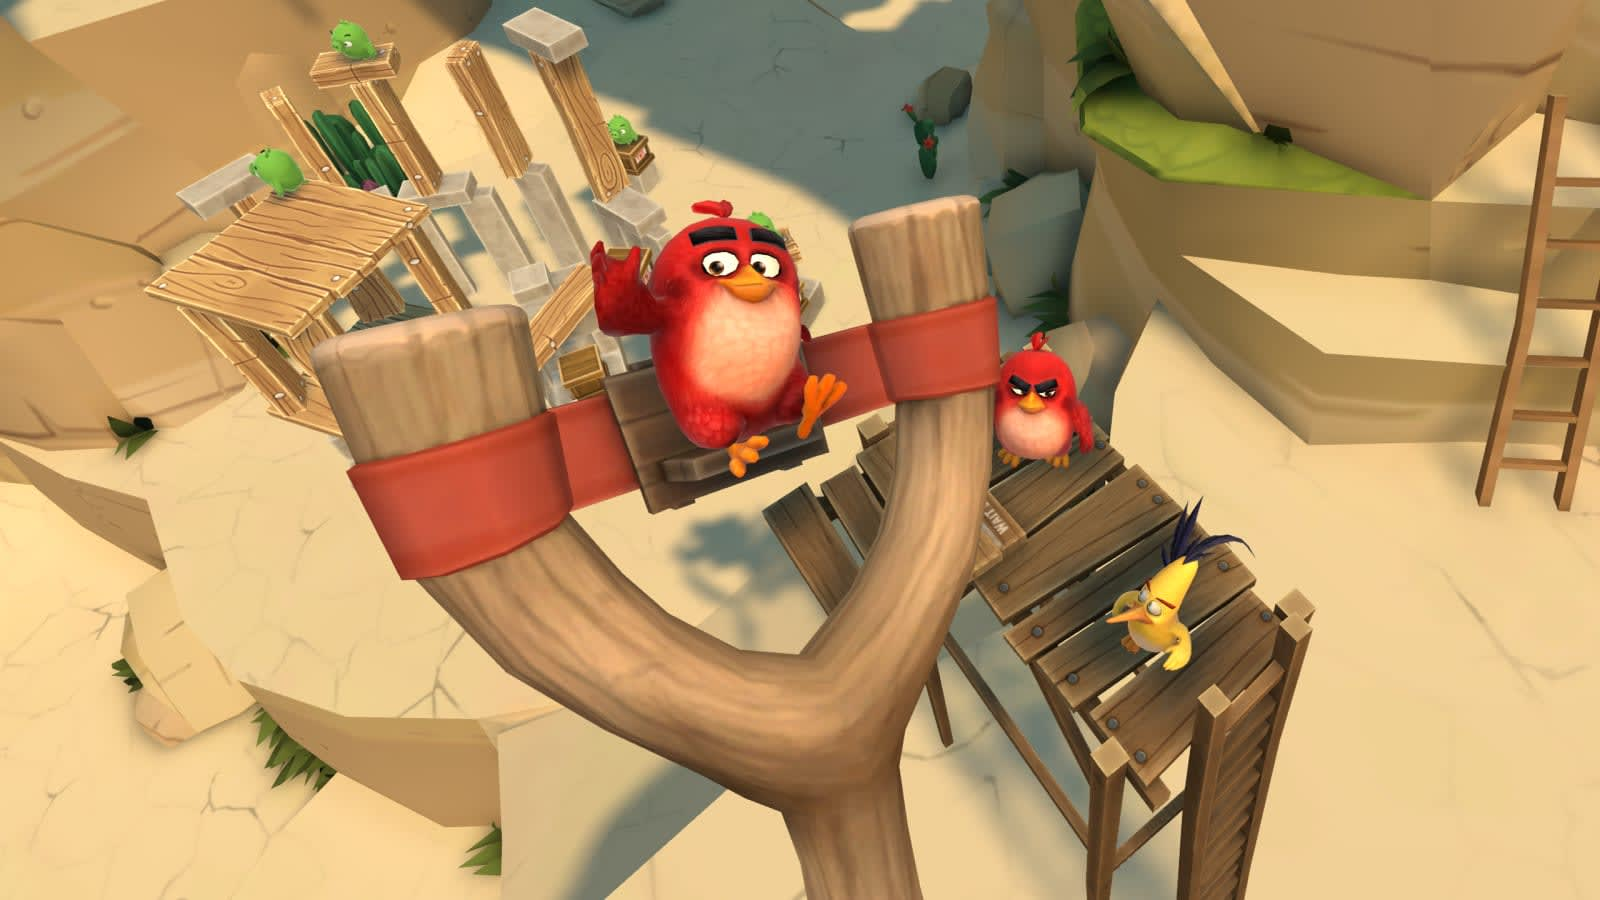 d5fecd5bb8 The first Angry Birds VR game puts the slingshot in your hand